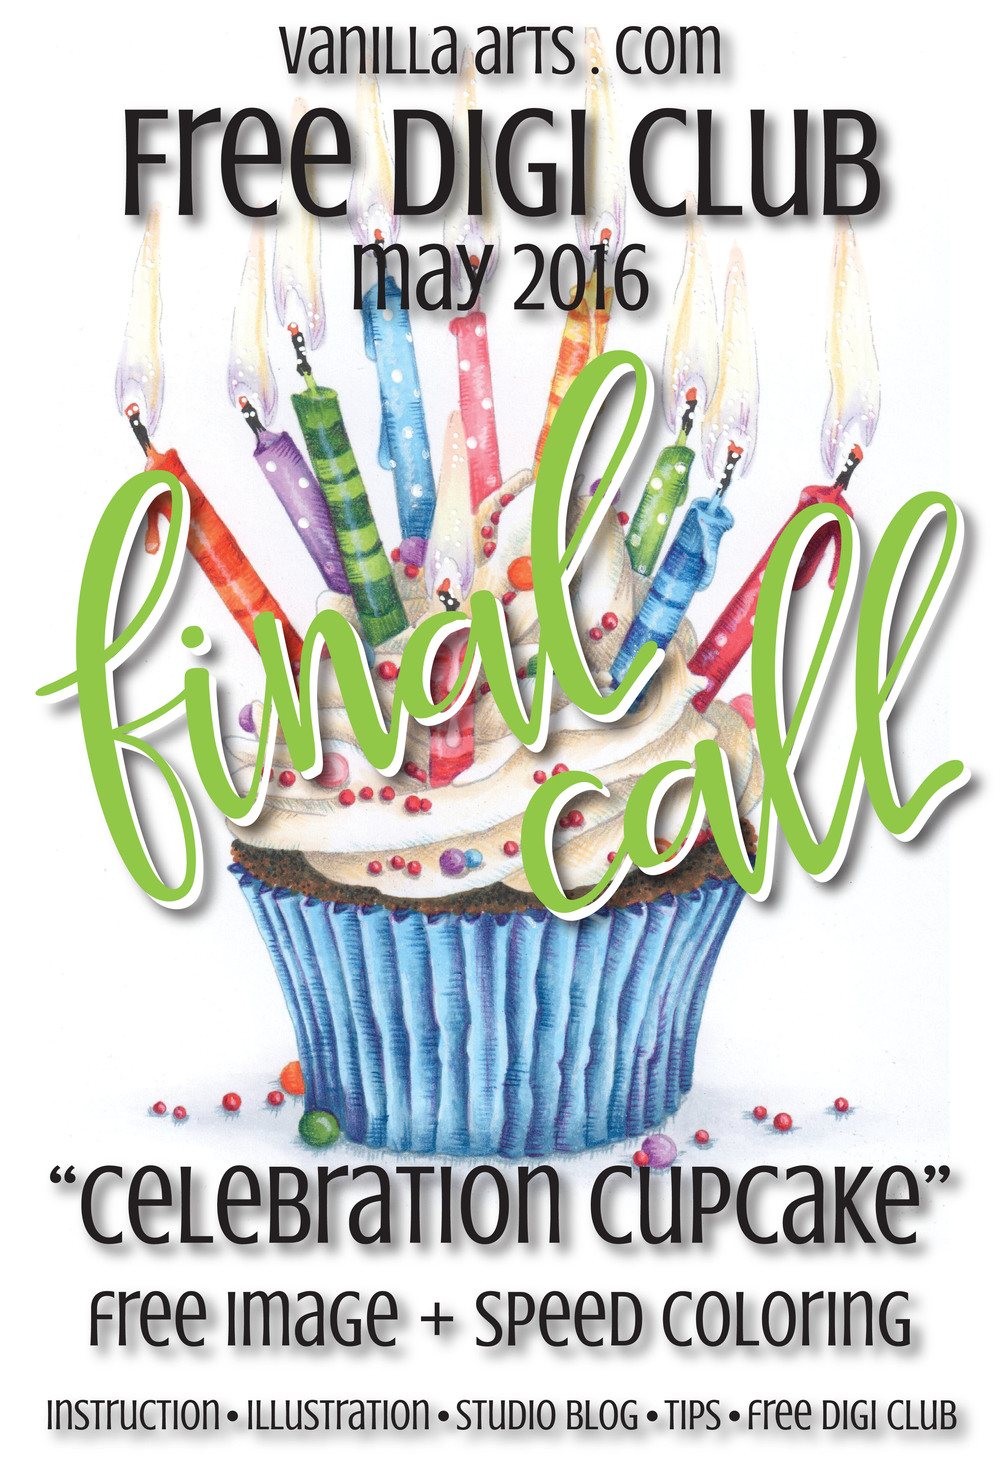 """Final Call for May's Free Digi Club image """"Celebration Cupcake"""". Subscribe quickly to get your copy! 